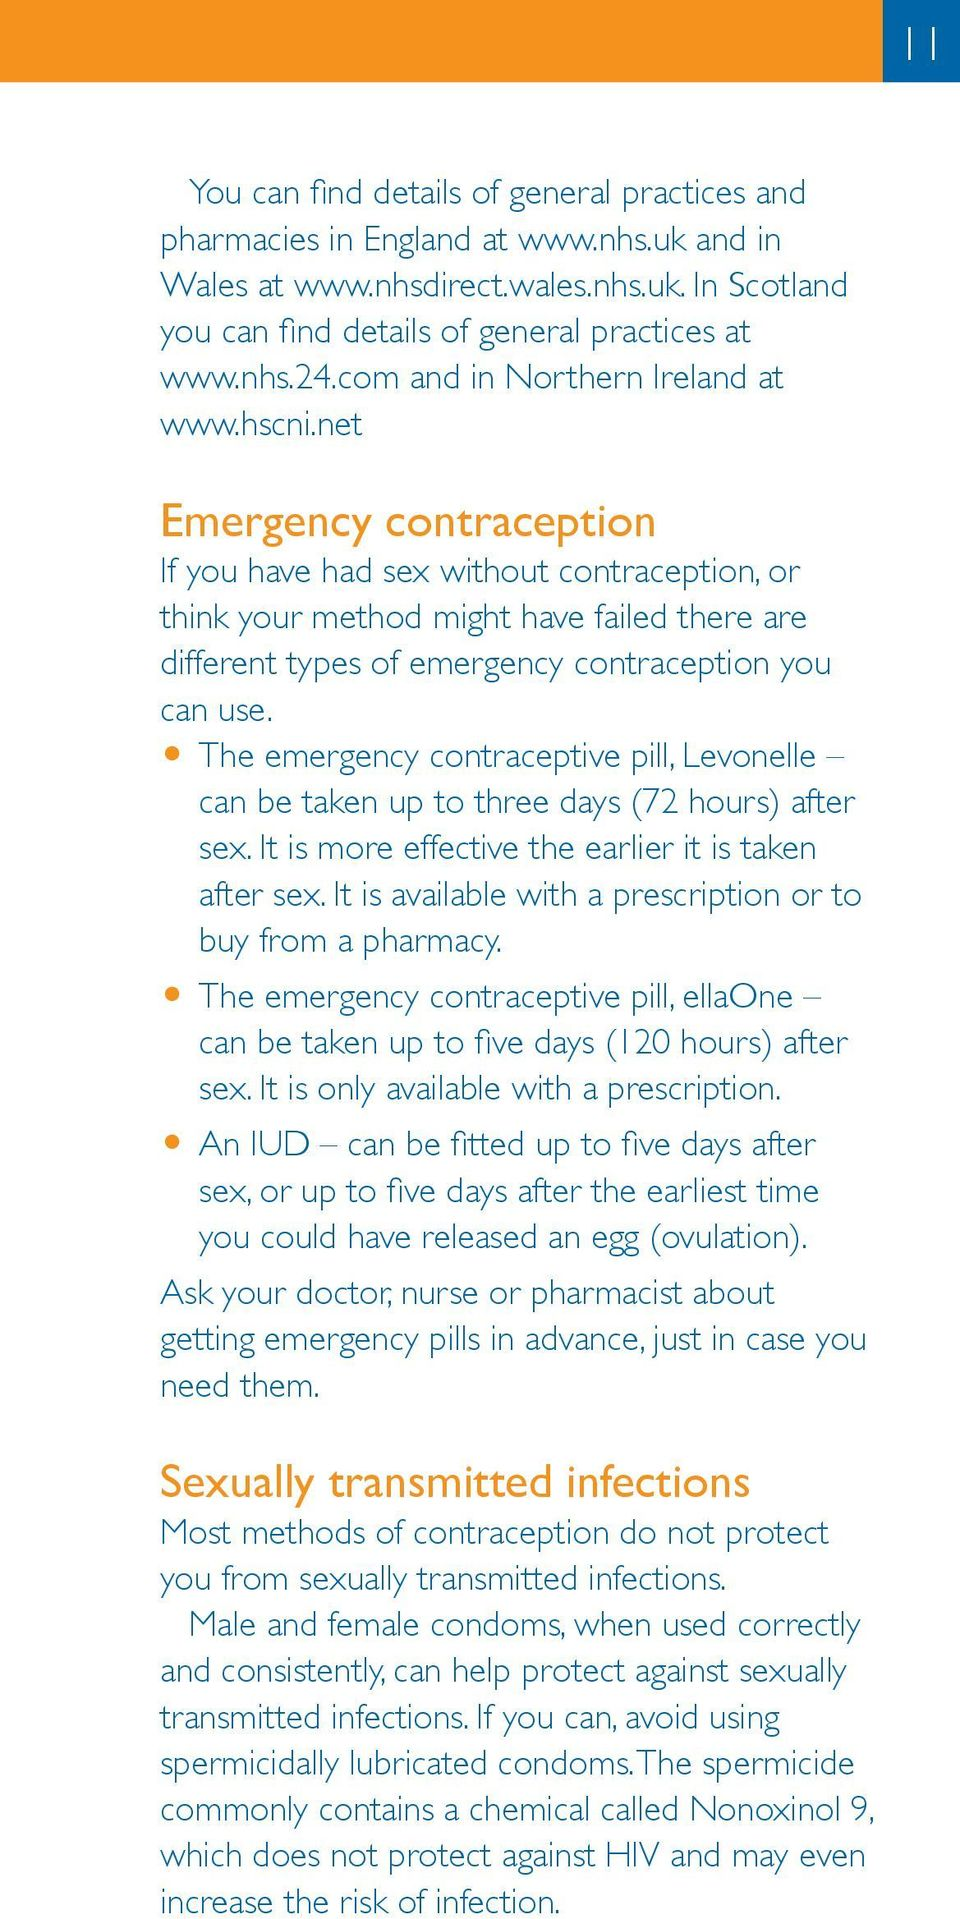 net Emergency contraception If you have had sex without contraception, or think your method might have failed there are different types of emergency contraception you can use.